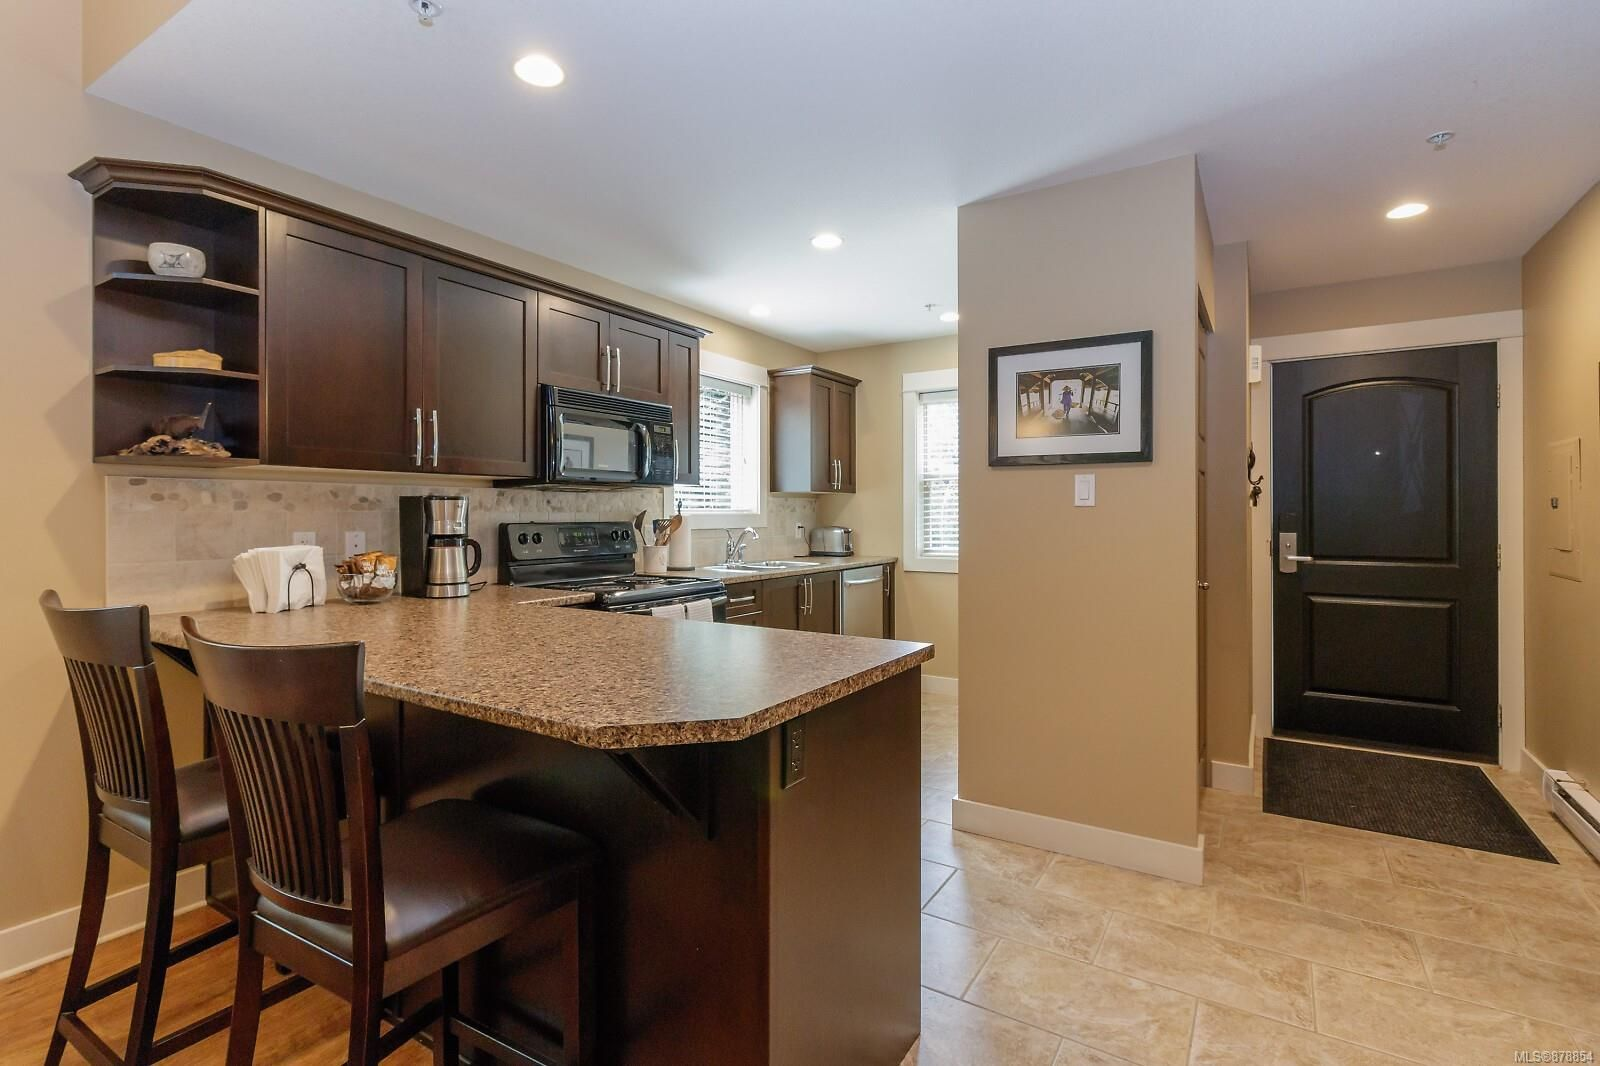 Photo 4: Photos: 223 1130 Resort Dr in : PQ Parksville Row/Townhouse for sale (Parksville/Qualicum)  : MLS®# 878854